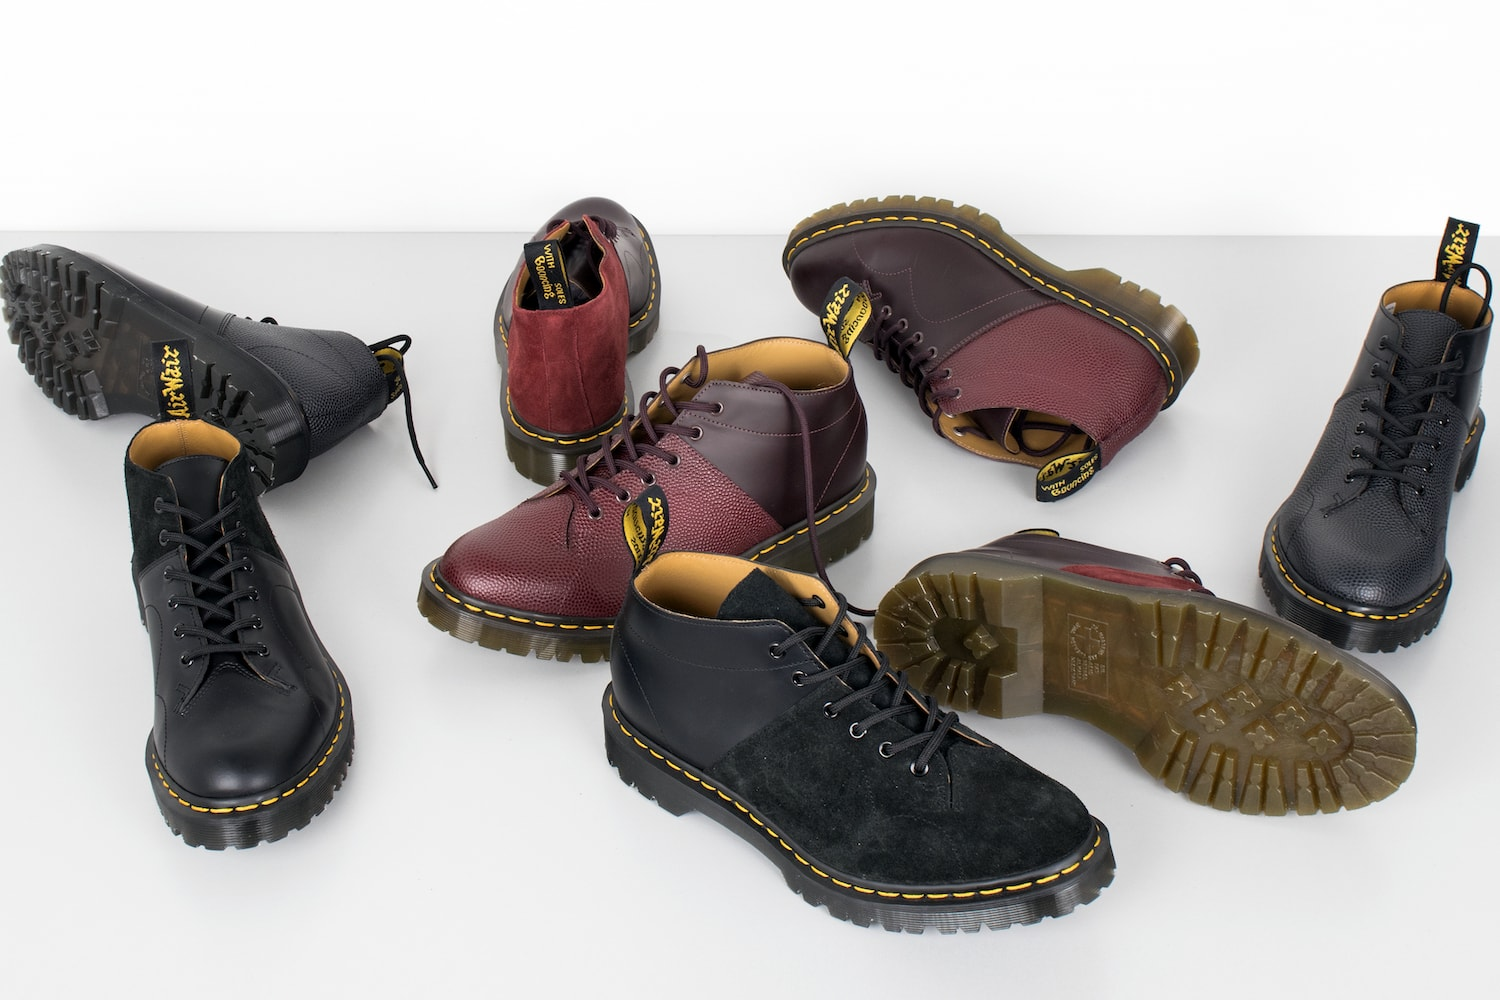 dr-martens-engineered-garments-church-monkey-boot-01 (1)